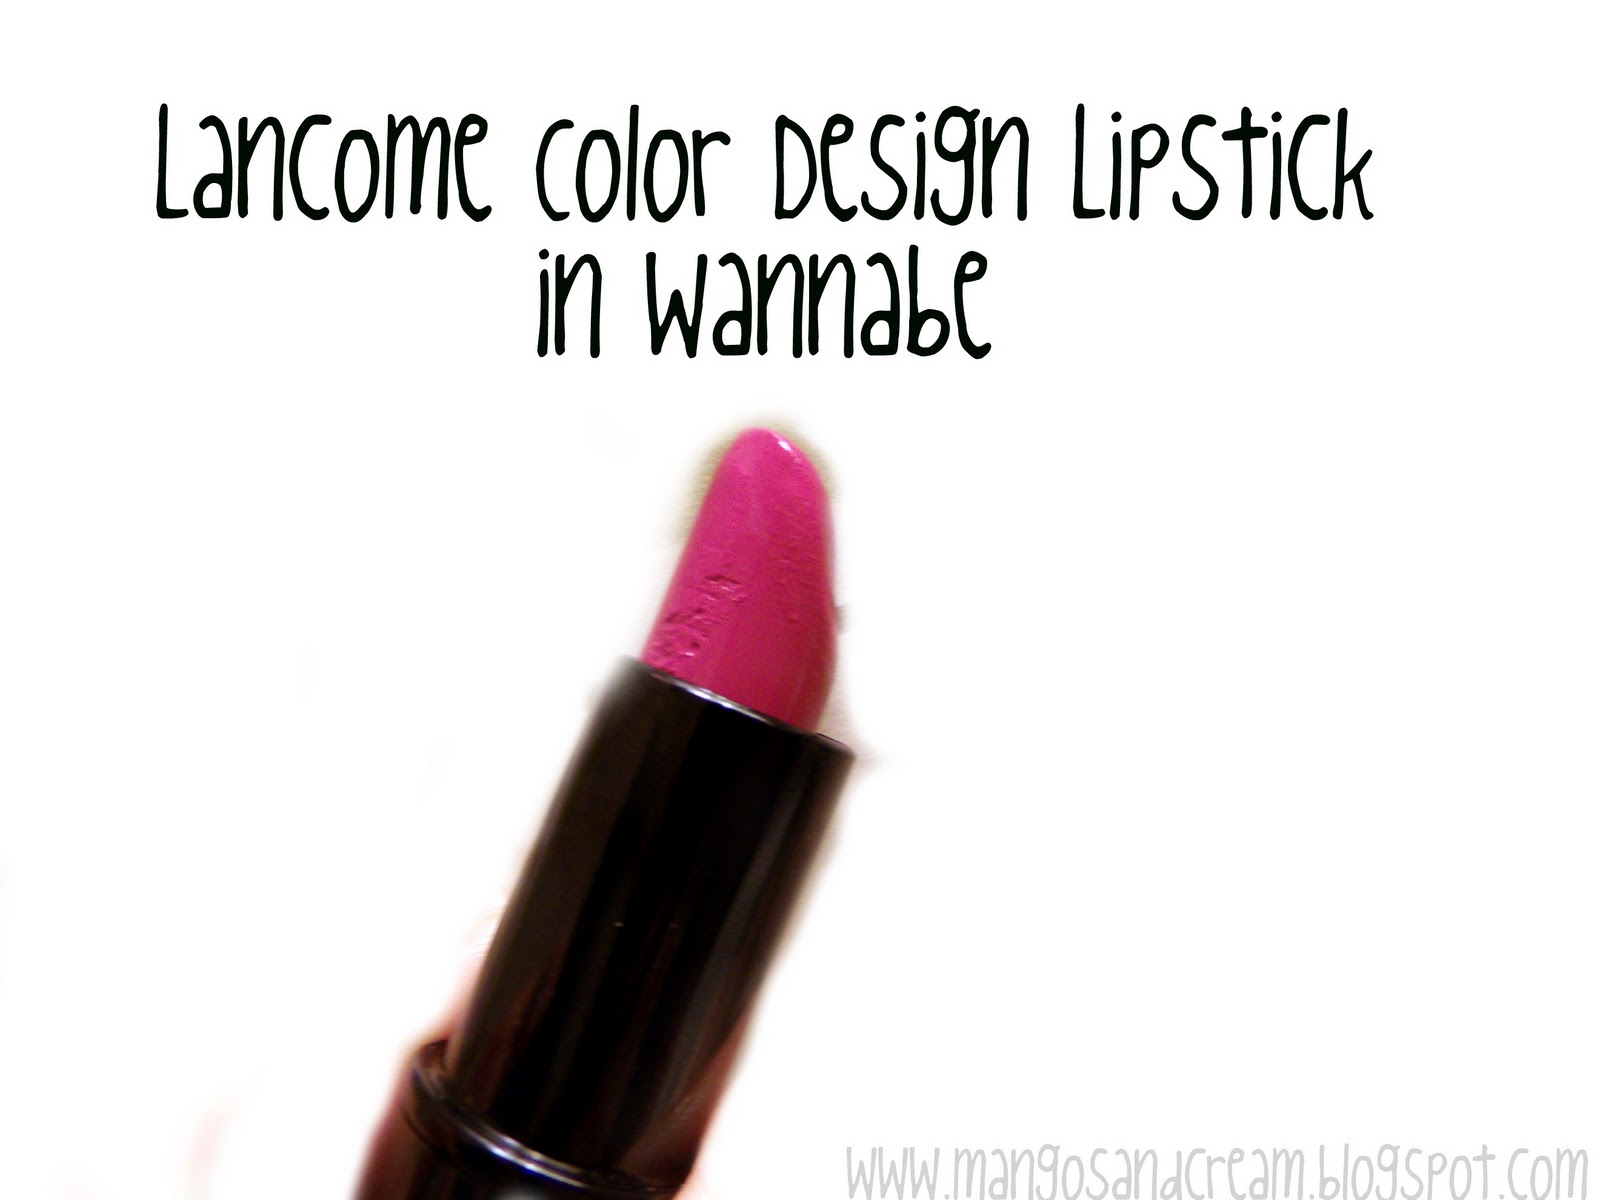 Mangoscream A Beauty Blog Wanna Be Bold Lancome Color Design